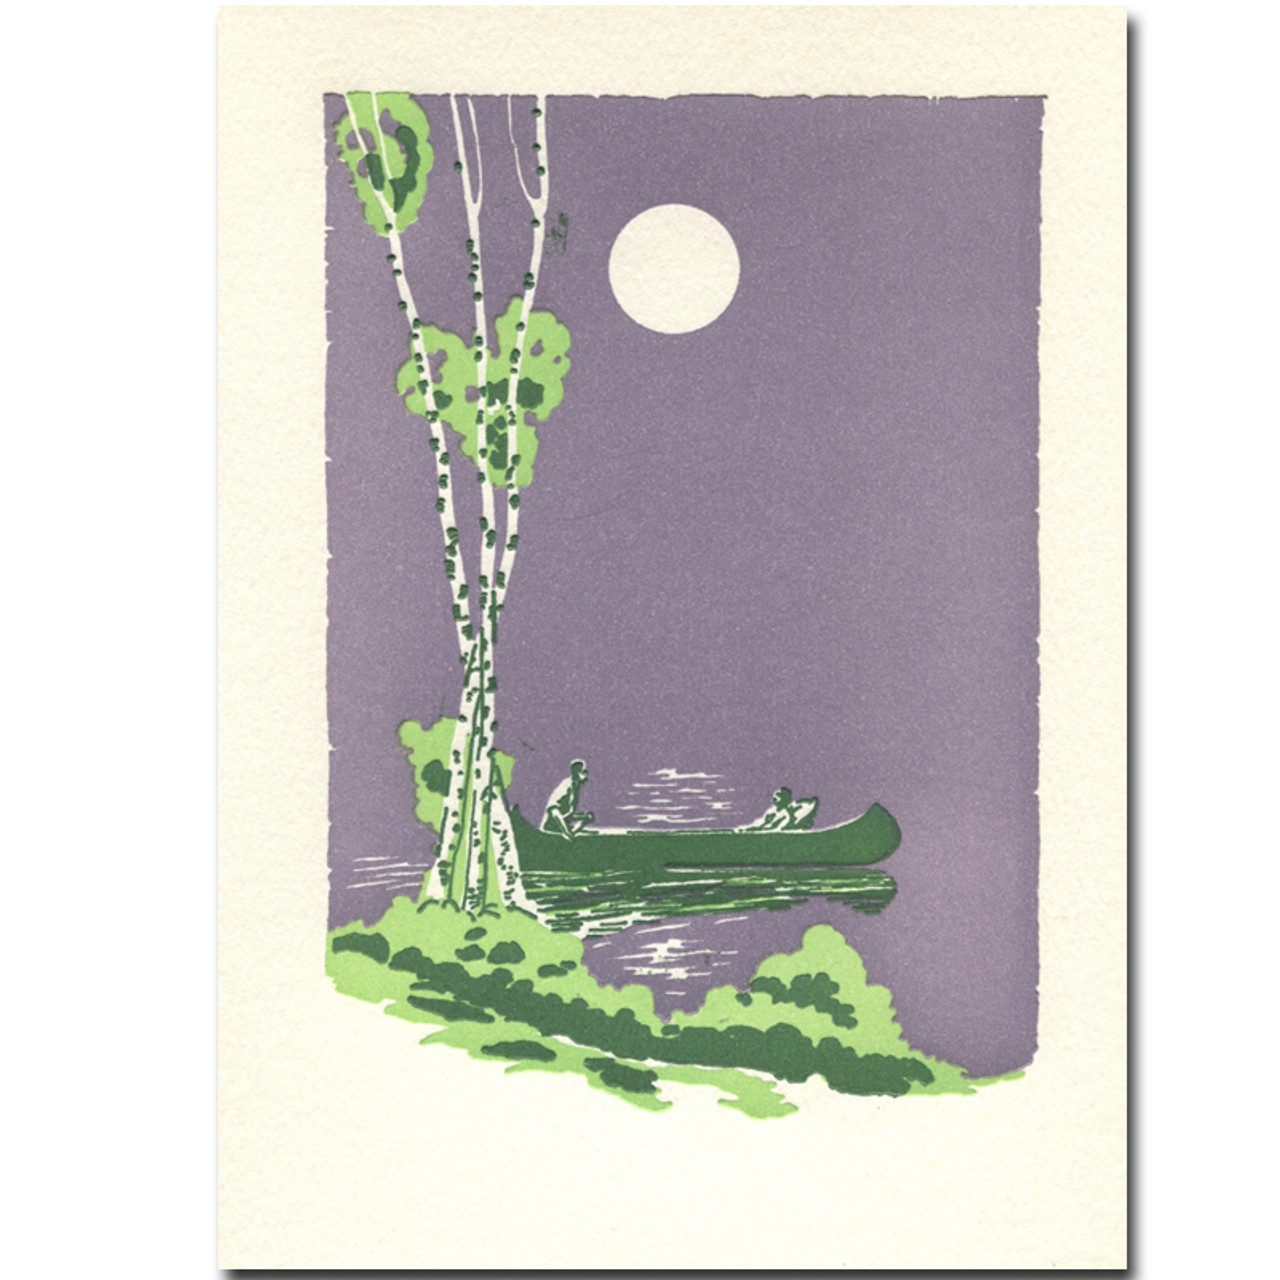 Saturn Press letterpress card, July Night, shows a couple in a canoe on a lake with the summer moon in the sky